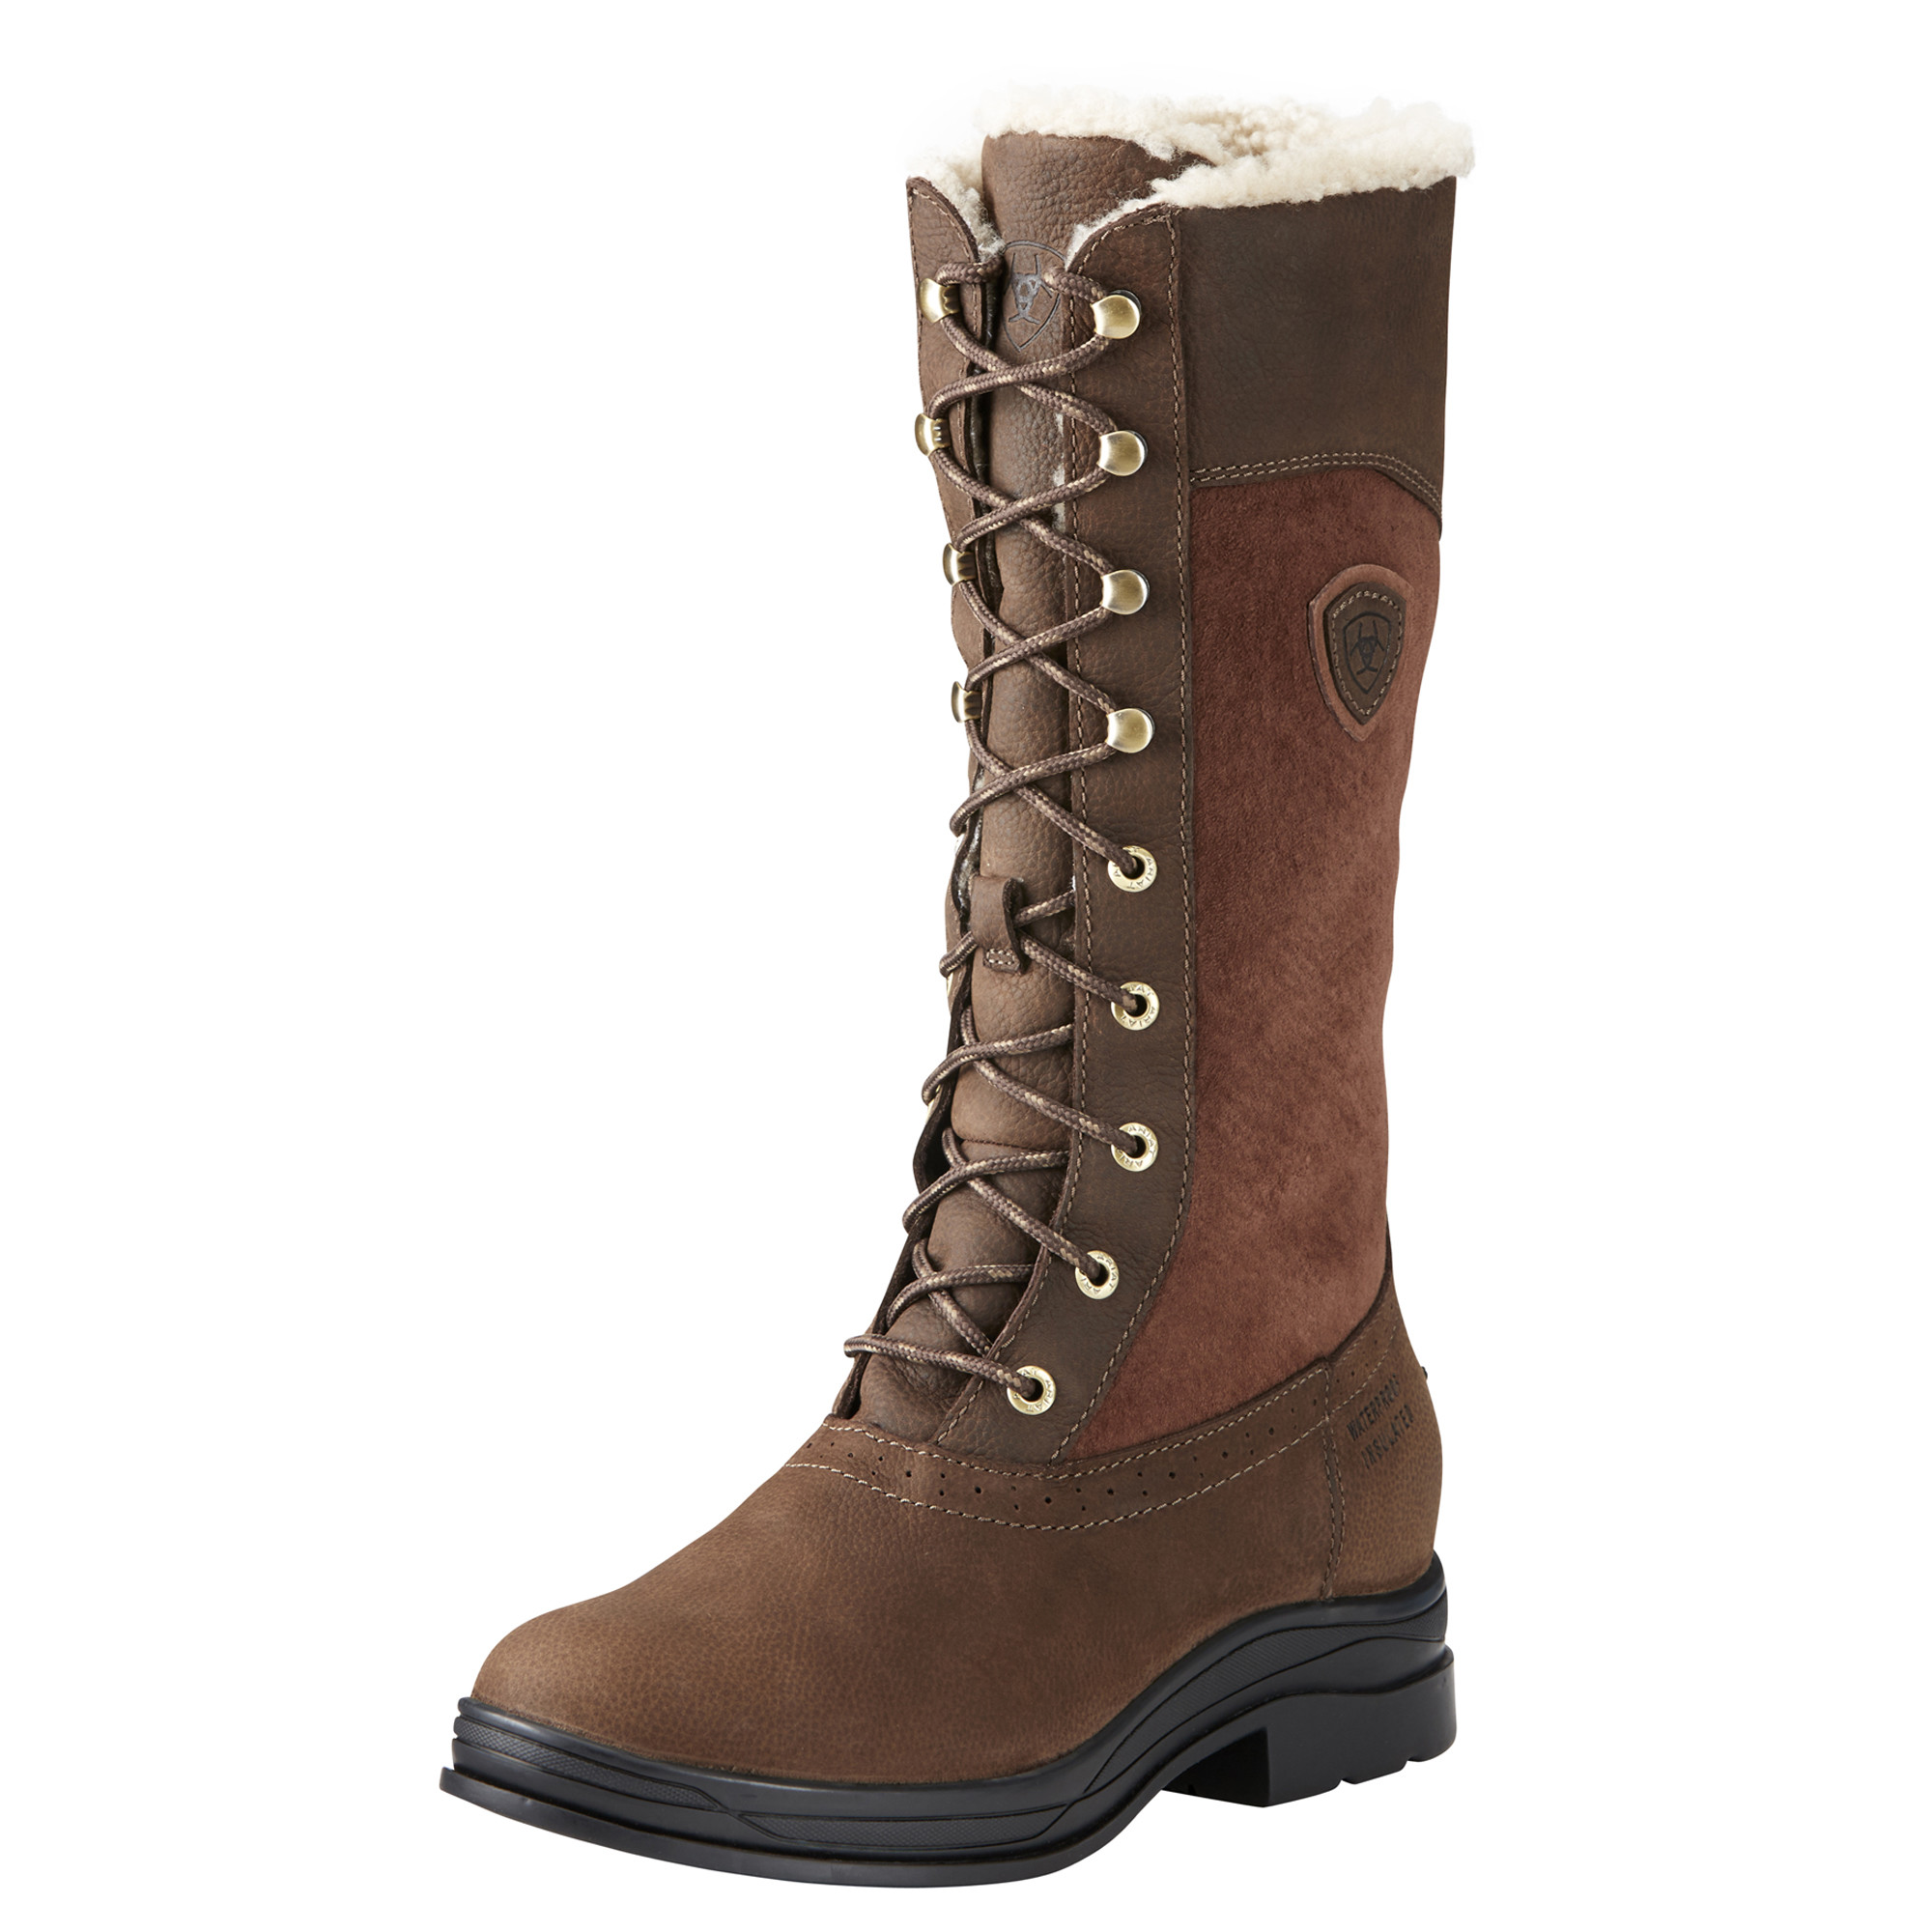 Ariat Wythburn H2O laars insulated bruin maat:40